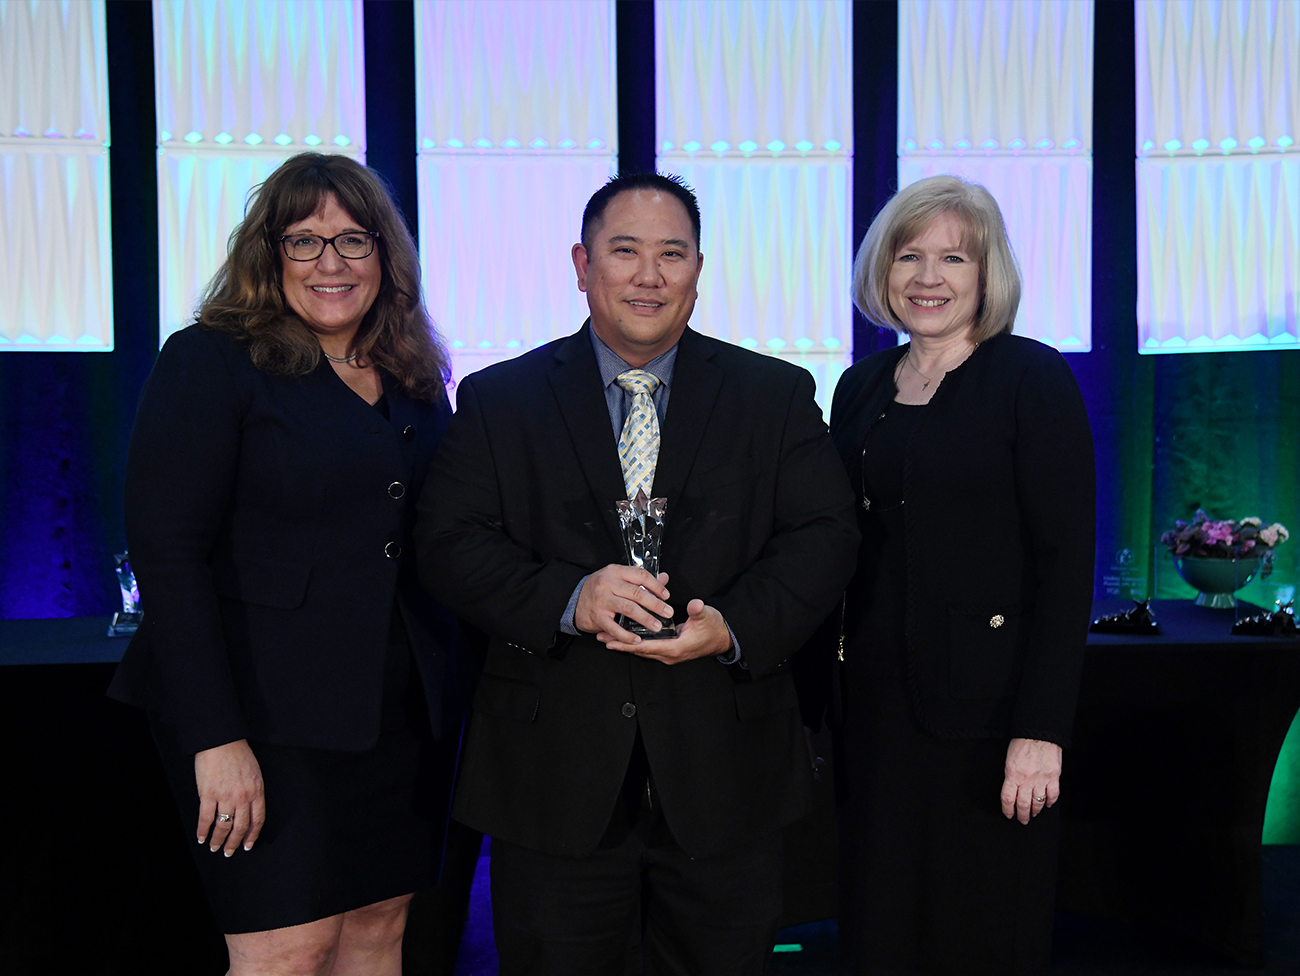 Kaiser Permanente Pharmacy Program honored for excellence